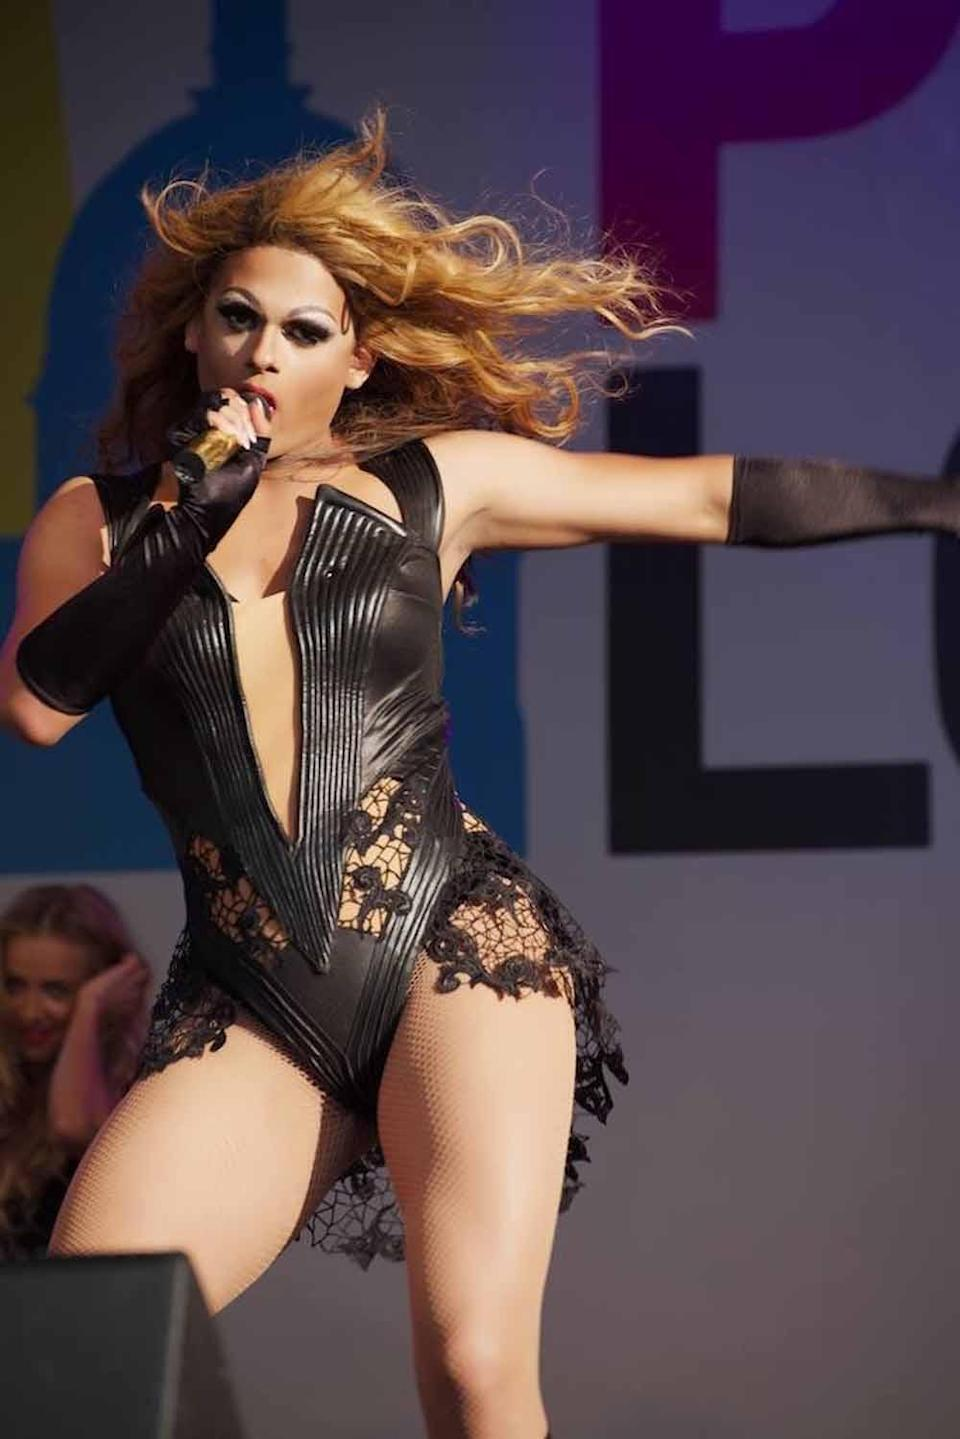 Aaron performing at London Pride in 2015 (PA Real Life/Aaron Carty)